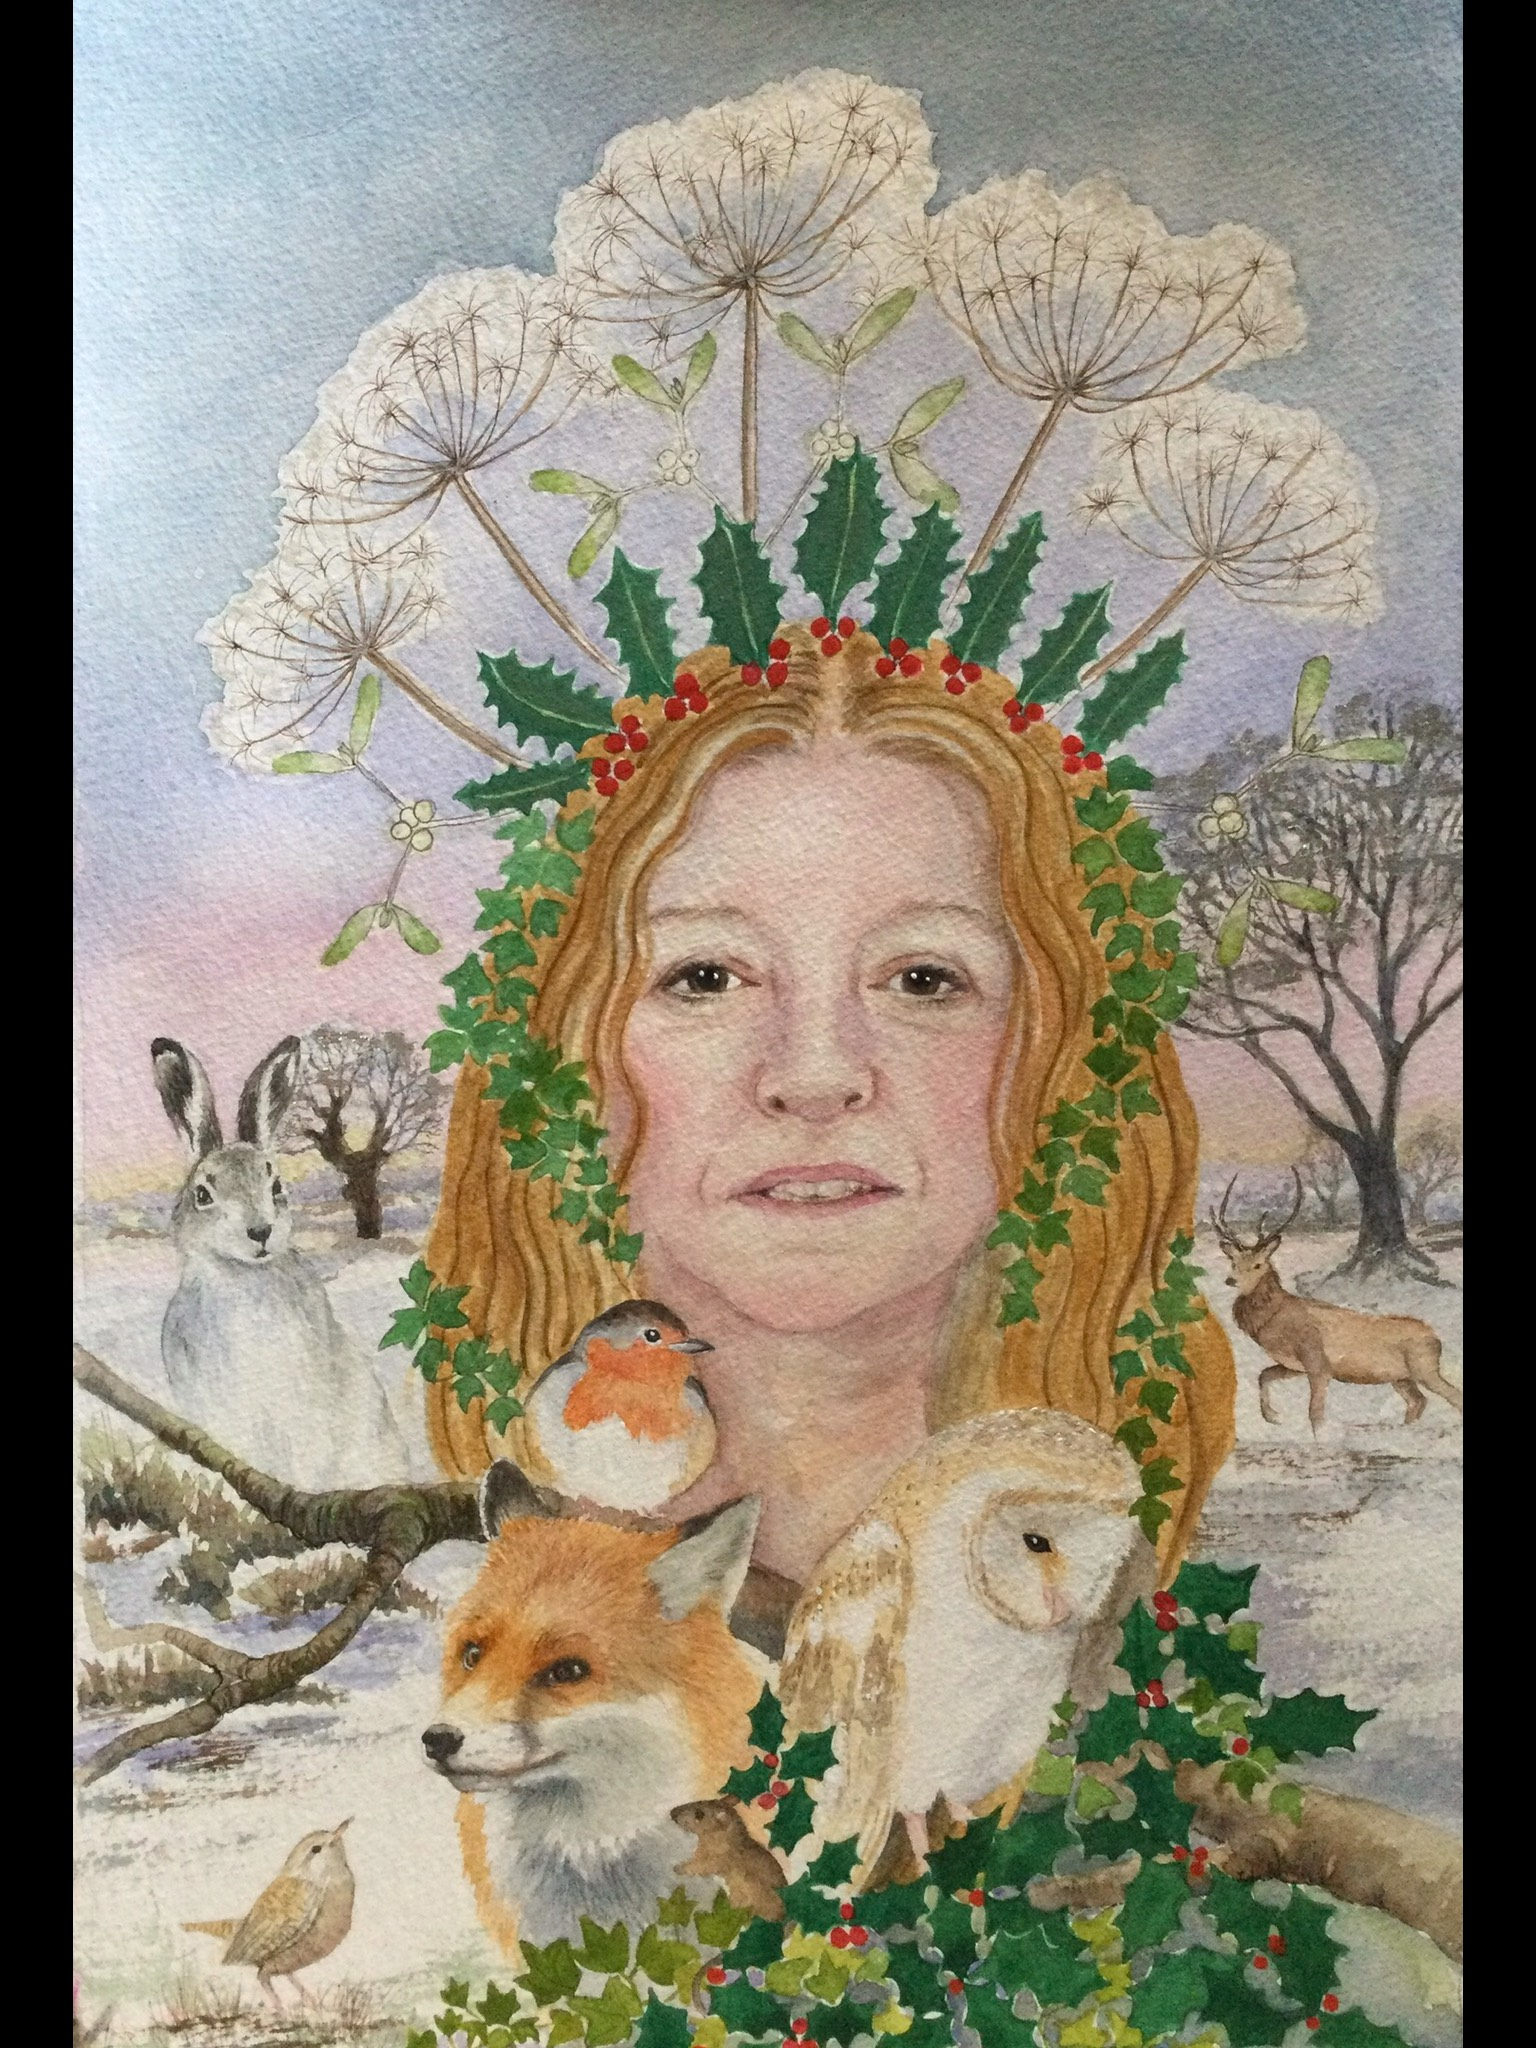 Mother Holle - The Wise Queen of Winter